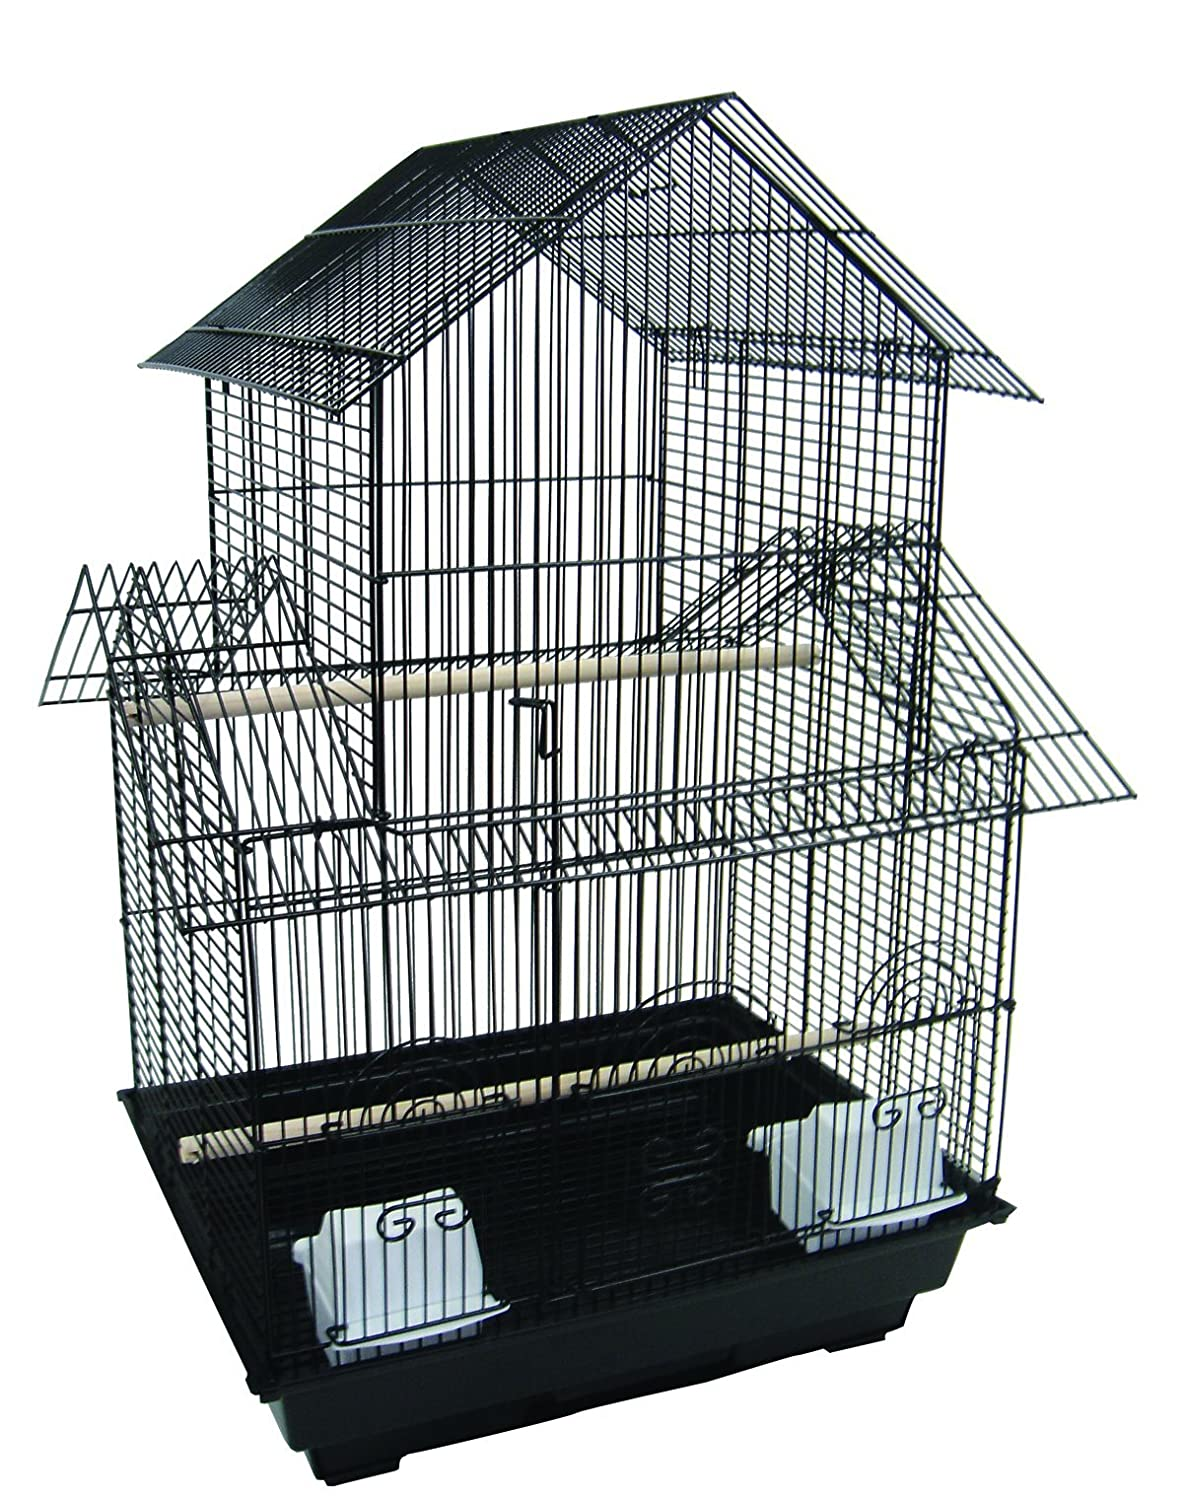 YML A5944 3/8-Inch Bar Spacing Pagoda Small Bird Cage, 18-Inch by 18-Inch, White A5944WHT